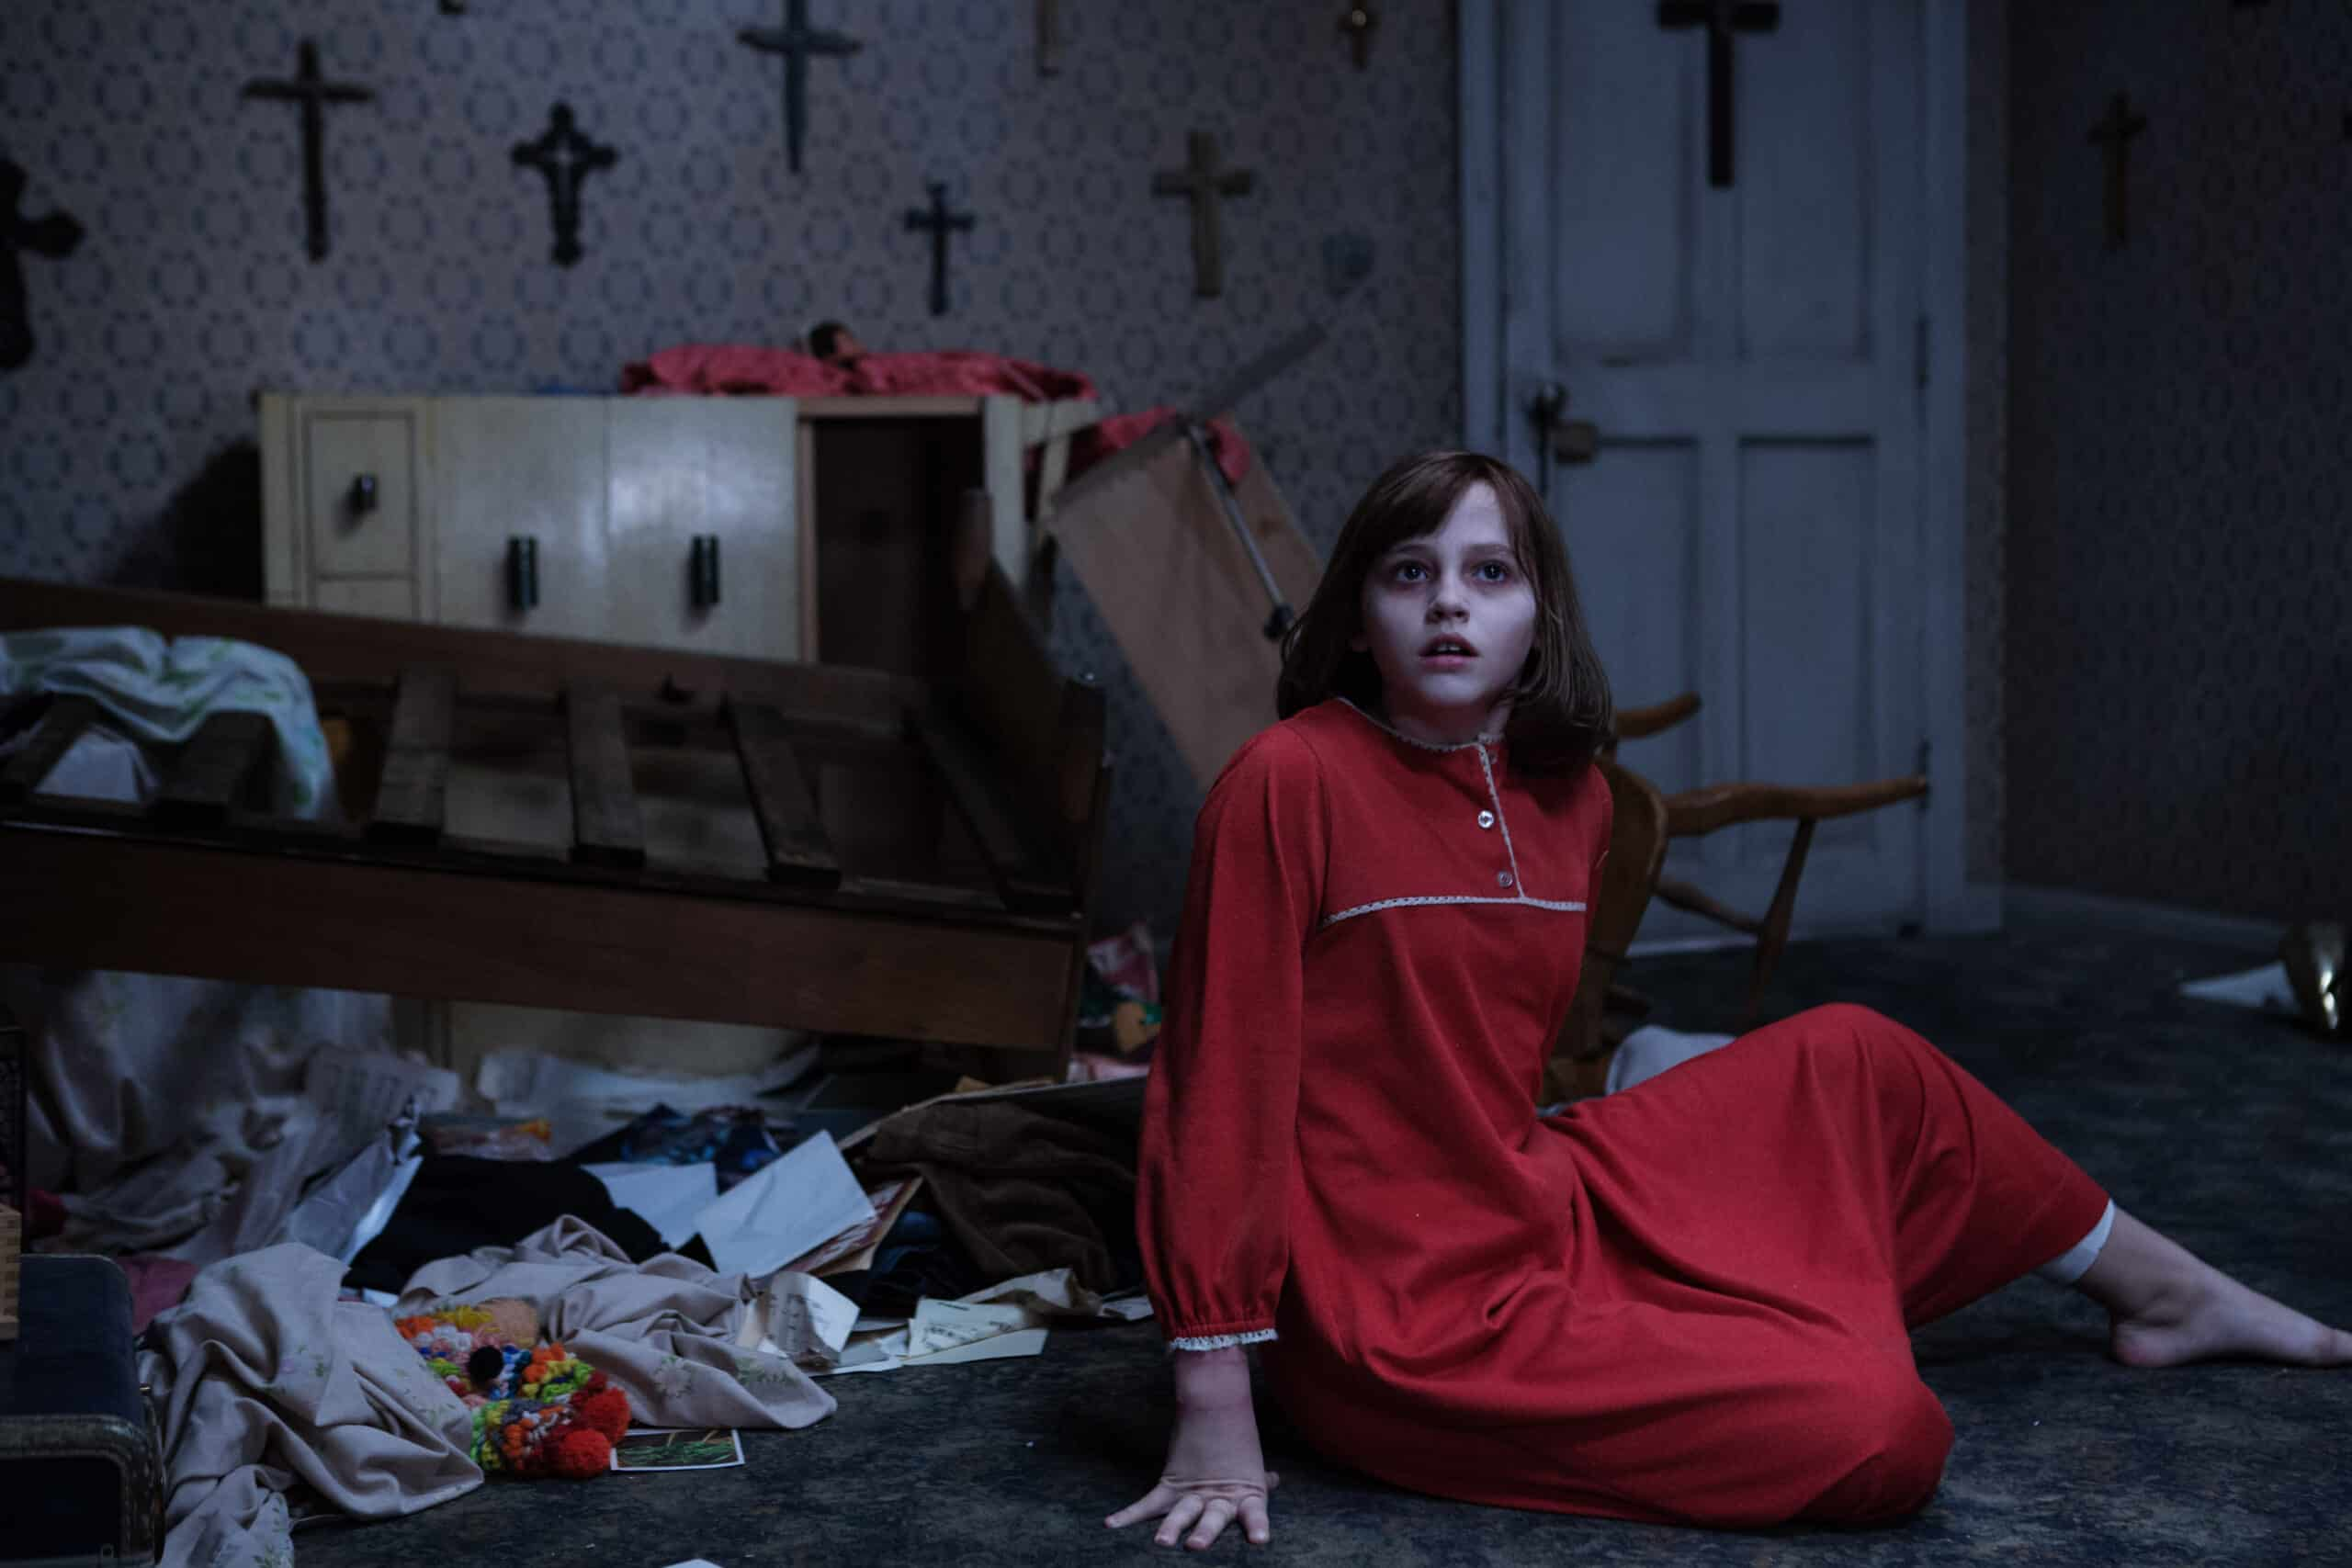 Featured image for Social Media Claims 'The Conjuring 2' Summons Real-Life Demons